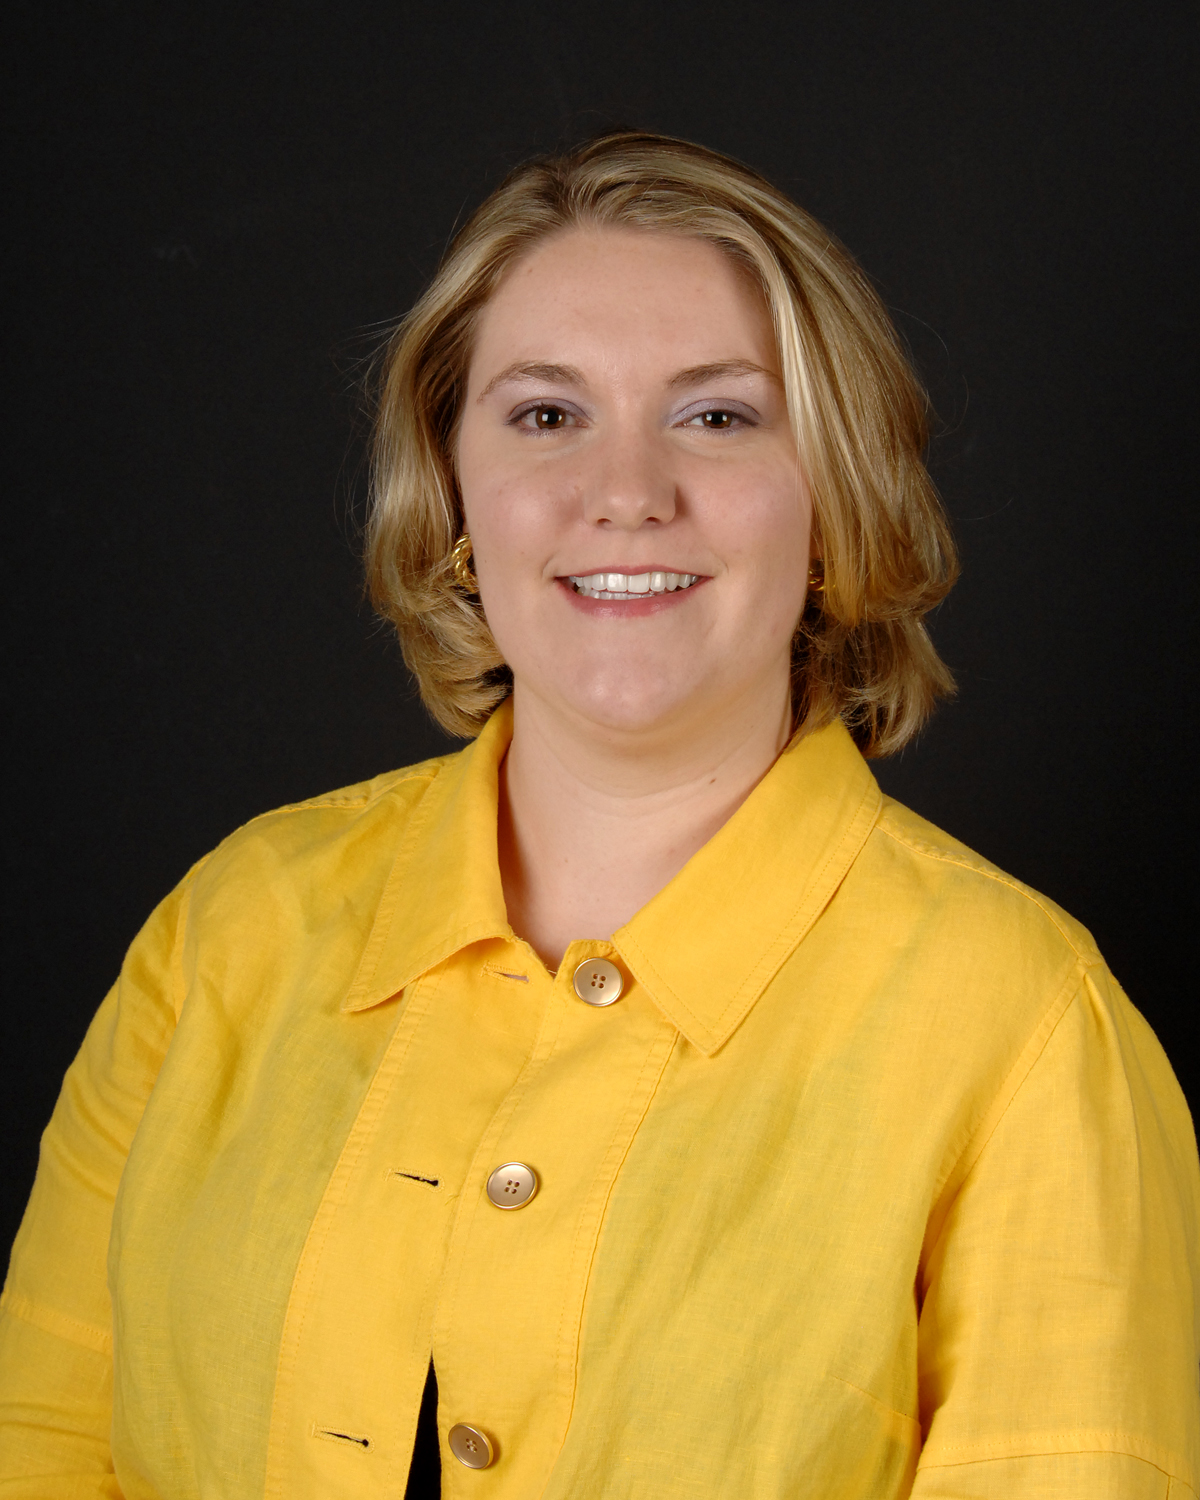 Traci Jordan, International Trade Office Graduate Assistant